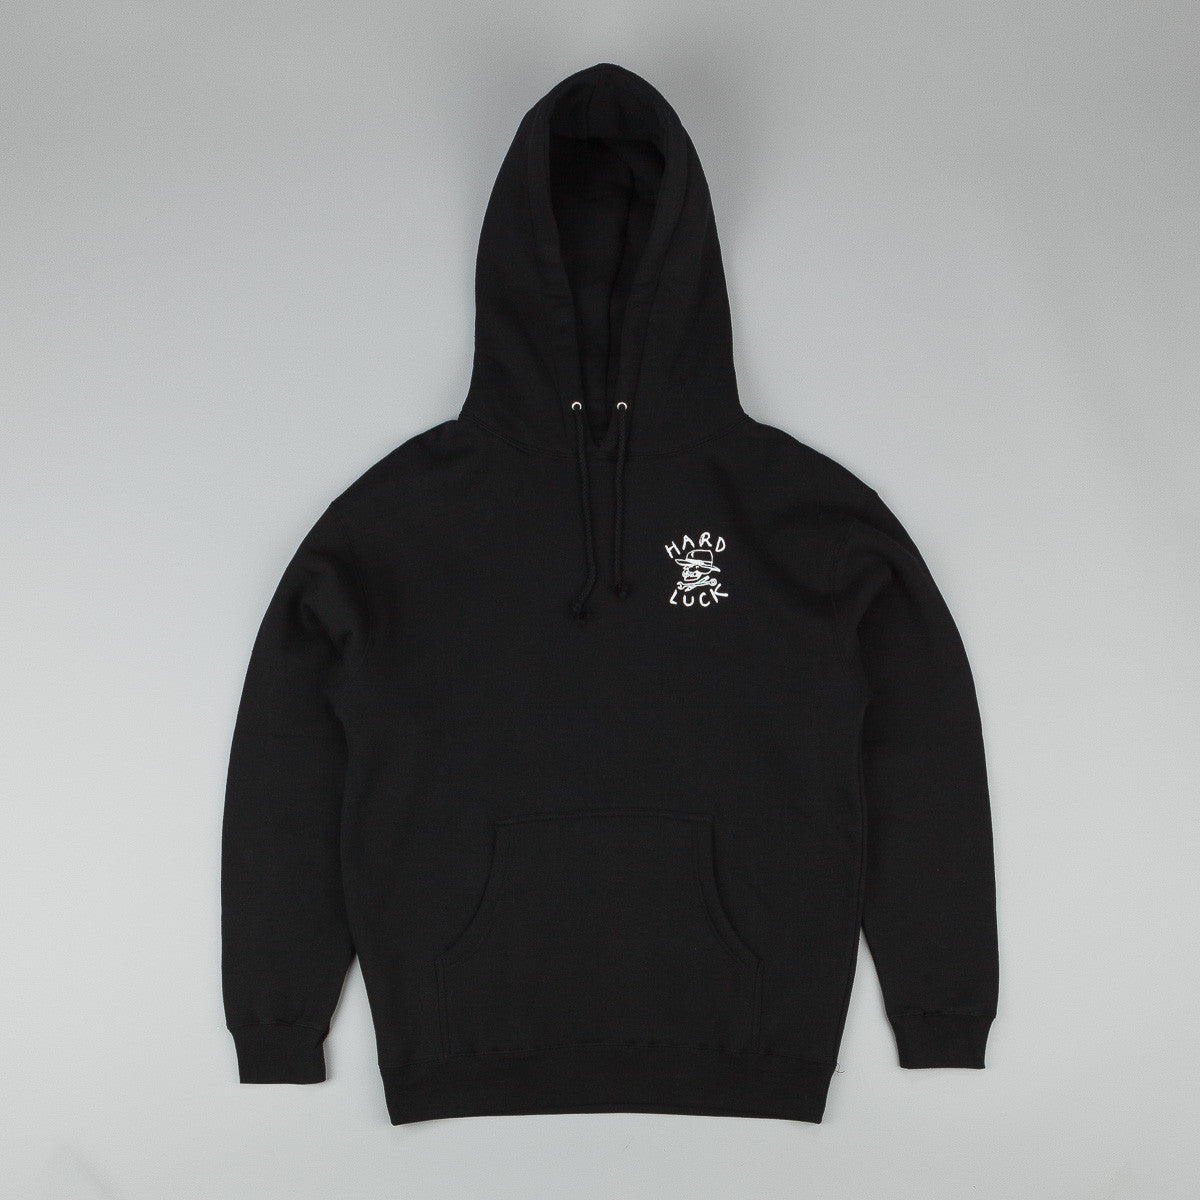 Hard Luck Hooded Sweatshirt Black